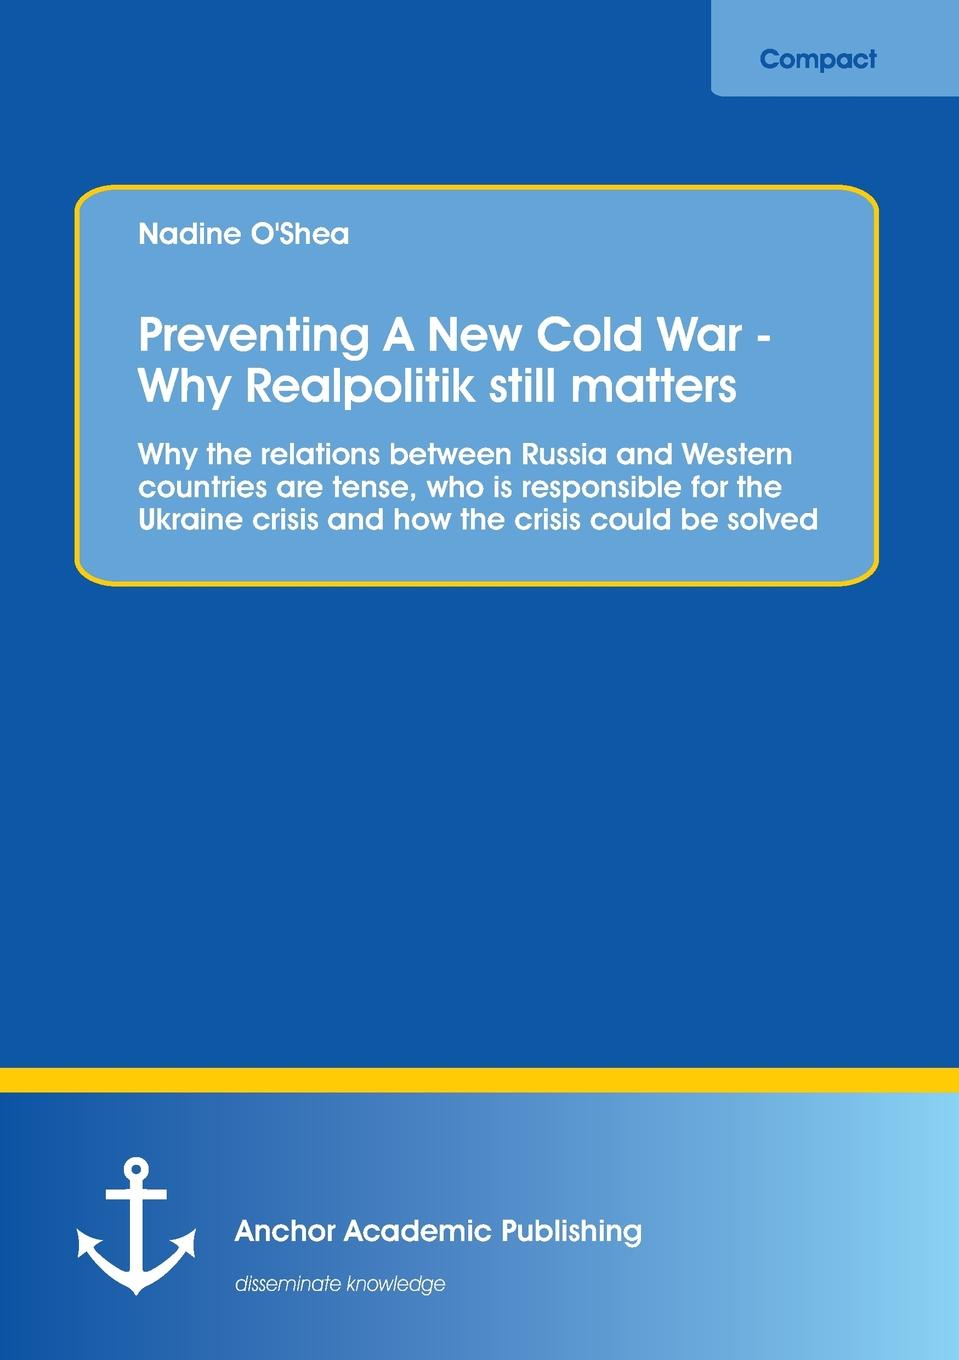 Nadine O'Shea Preventing A New Cold War - Why Realpolitik still matters assessment of interest rates in see countries during crisis